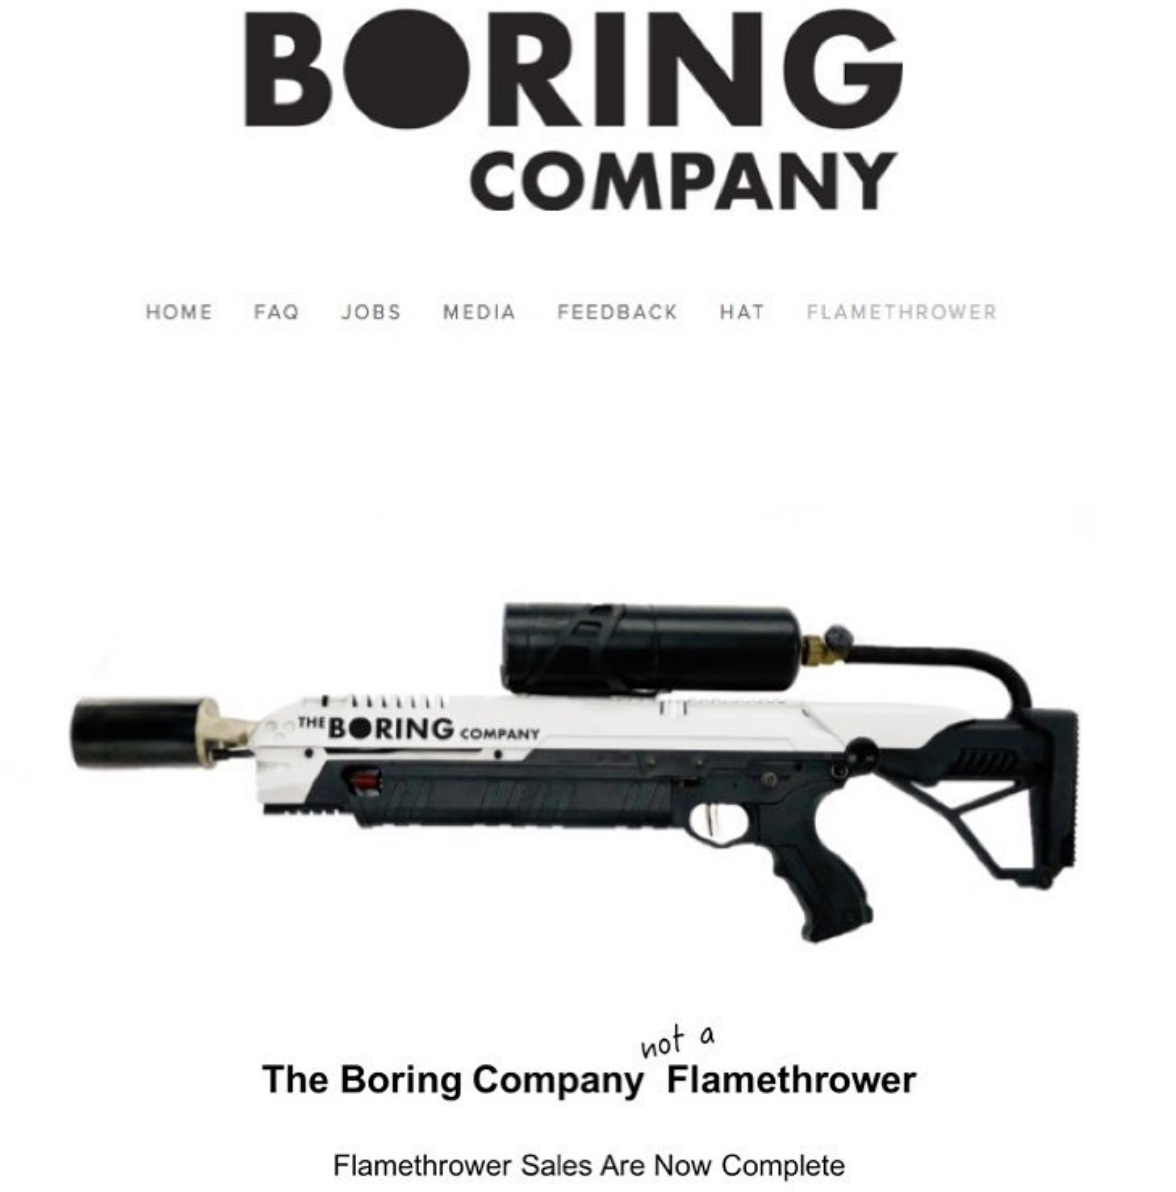 5c531c12e650 Swag from Elon Musk's Boring Company hits eBay for thousands of ...